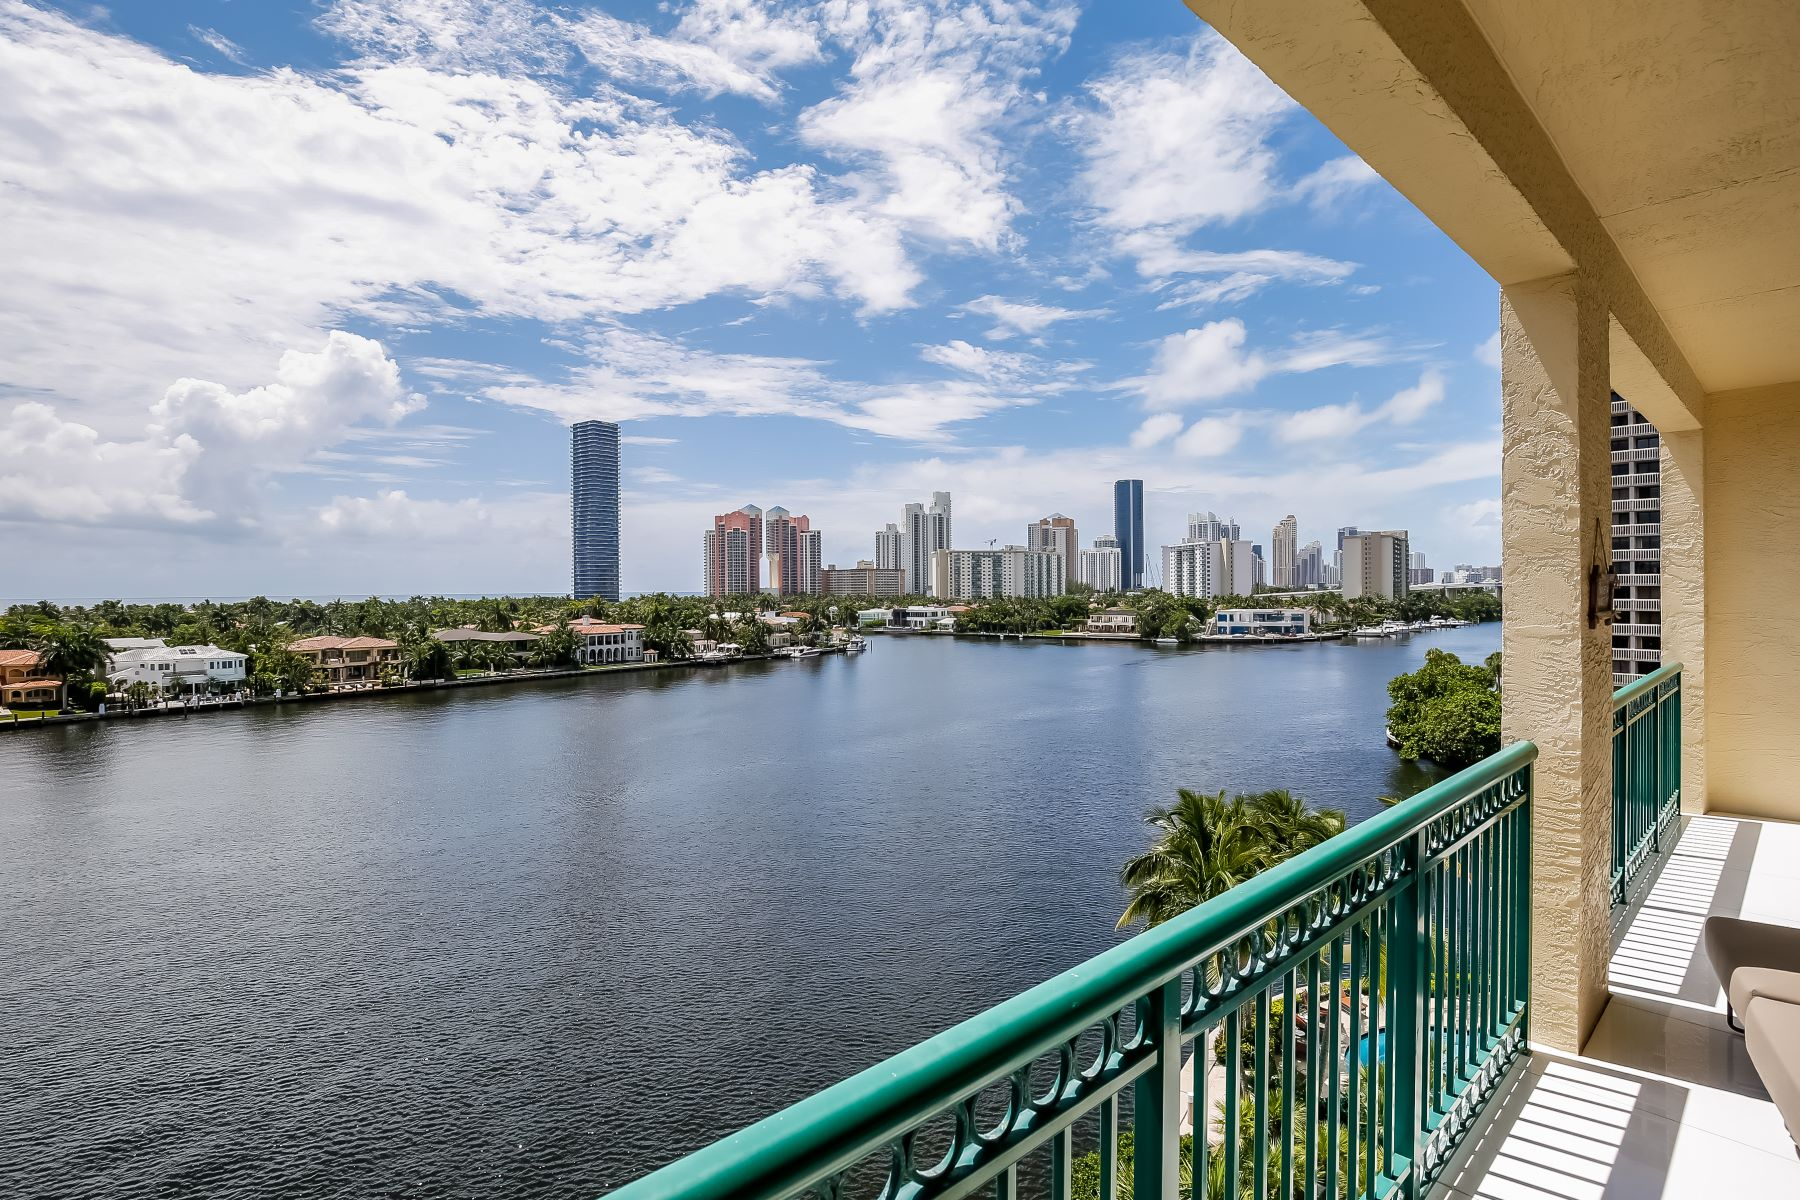 Condominium for Sale at 19925 Ne 39th Pl 19925 Ne 39th Pl 602 Aventura, Florida 33180 United States